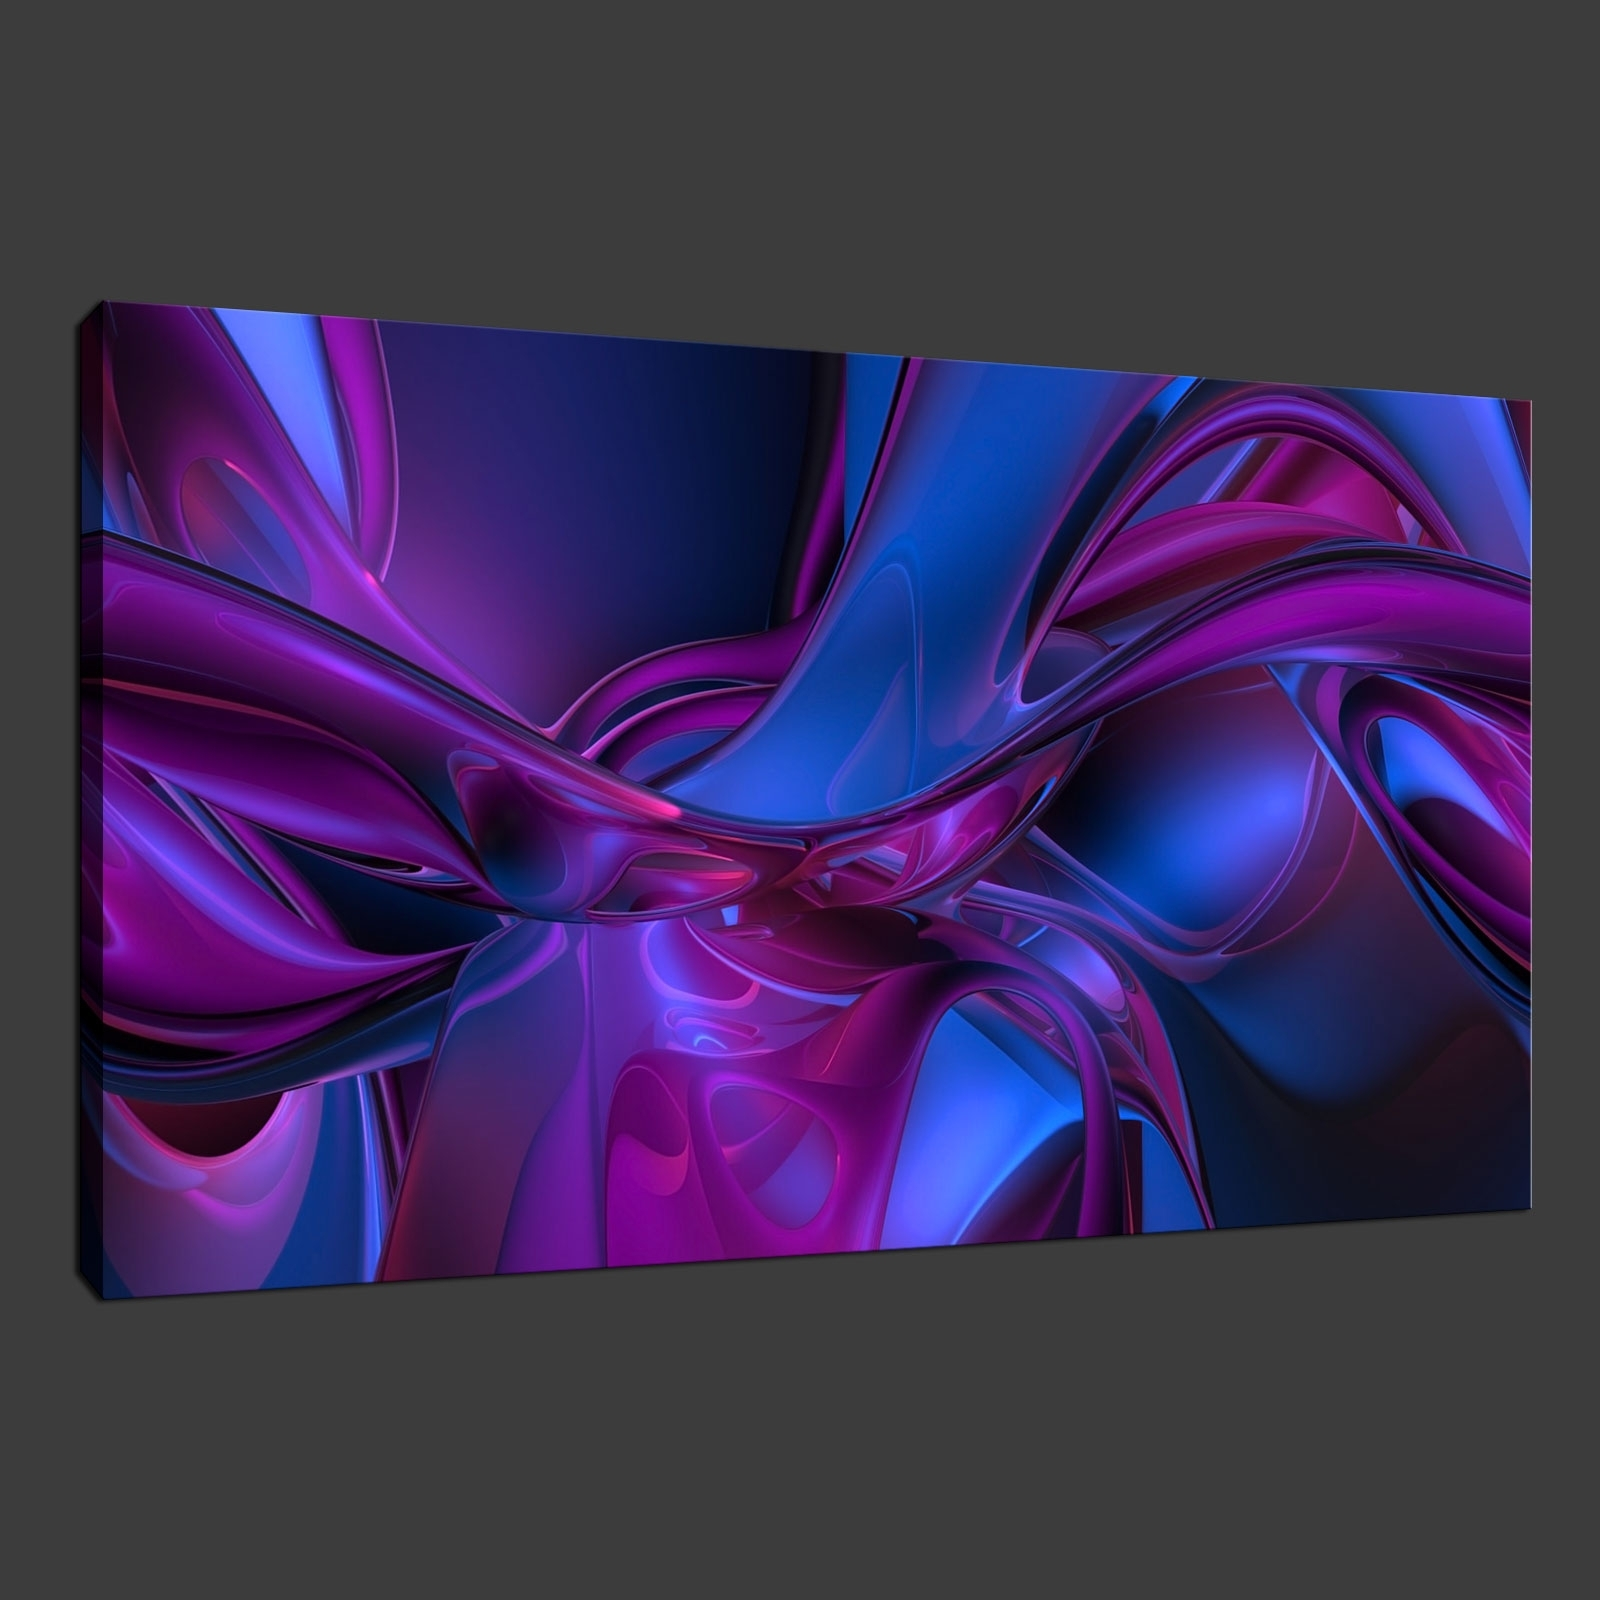 Purple Blue Abstract Premium Canvas Print Wall Art Modern Design With Fashionable Blue Abstract Wall Art (View 12 of 15)